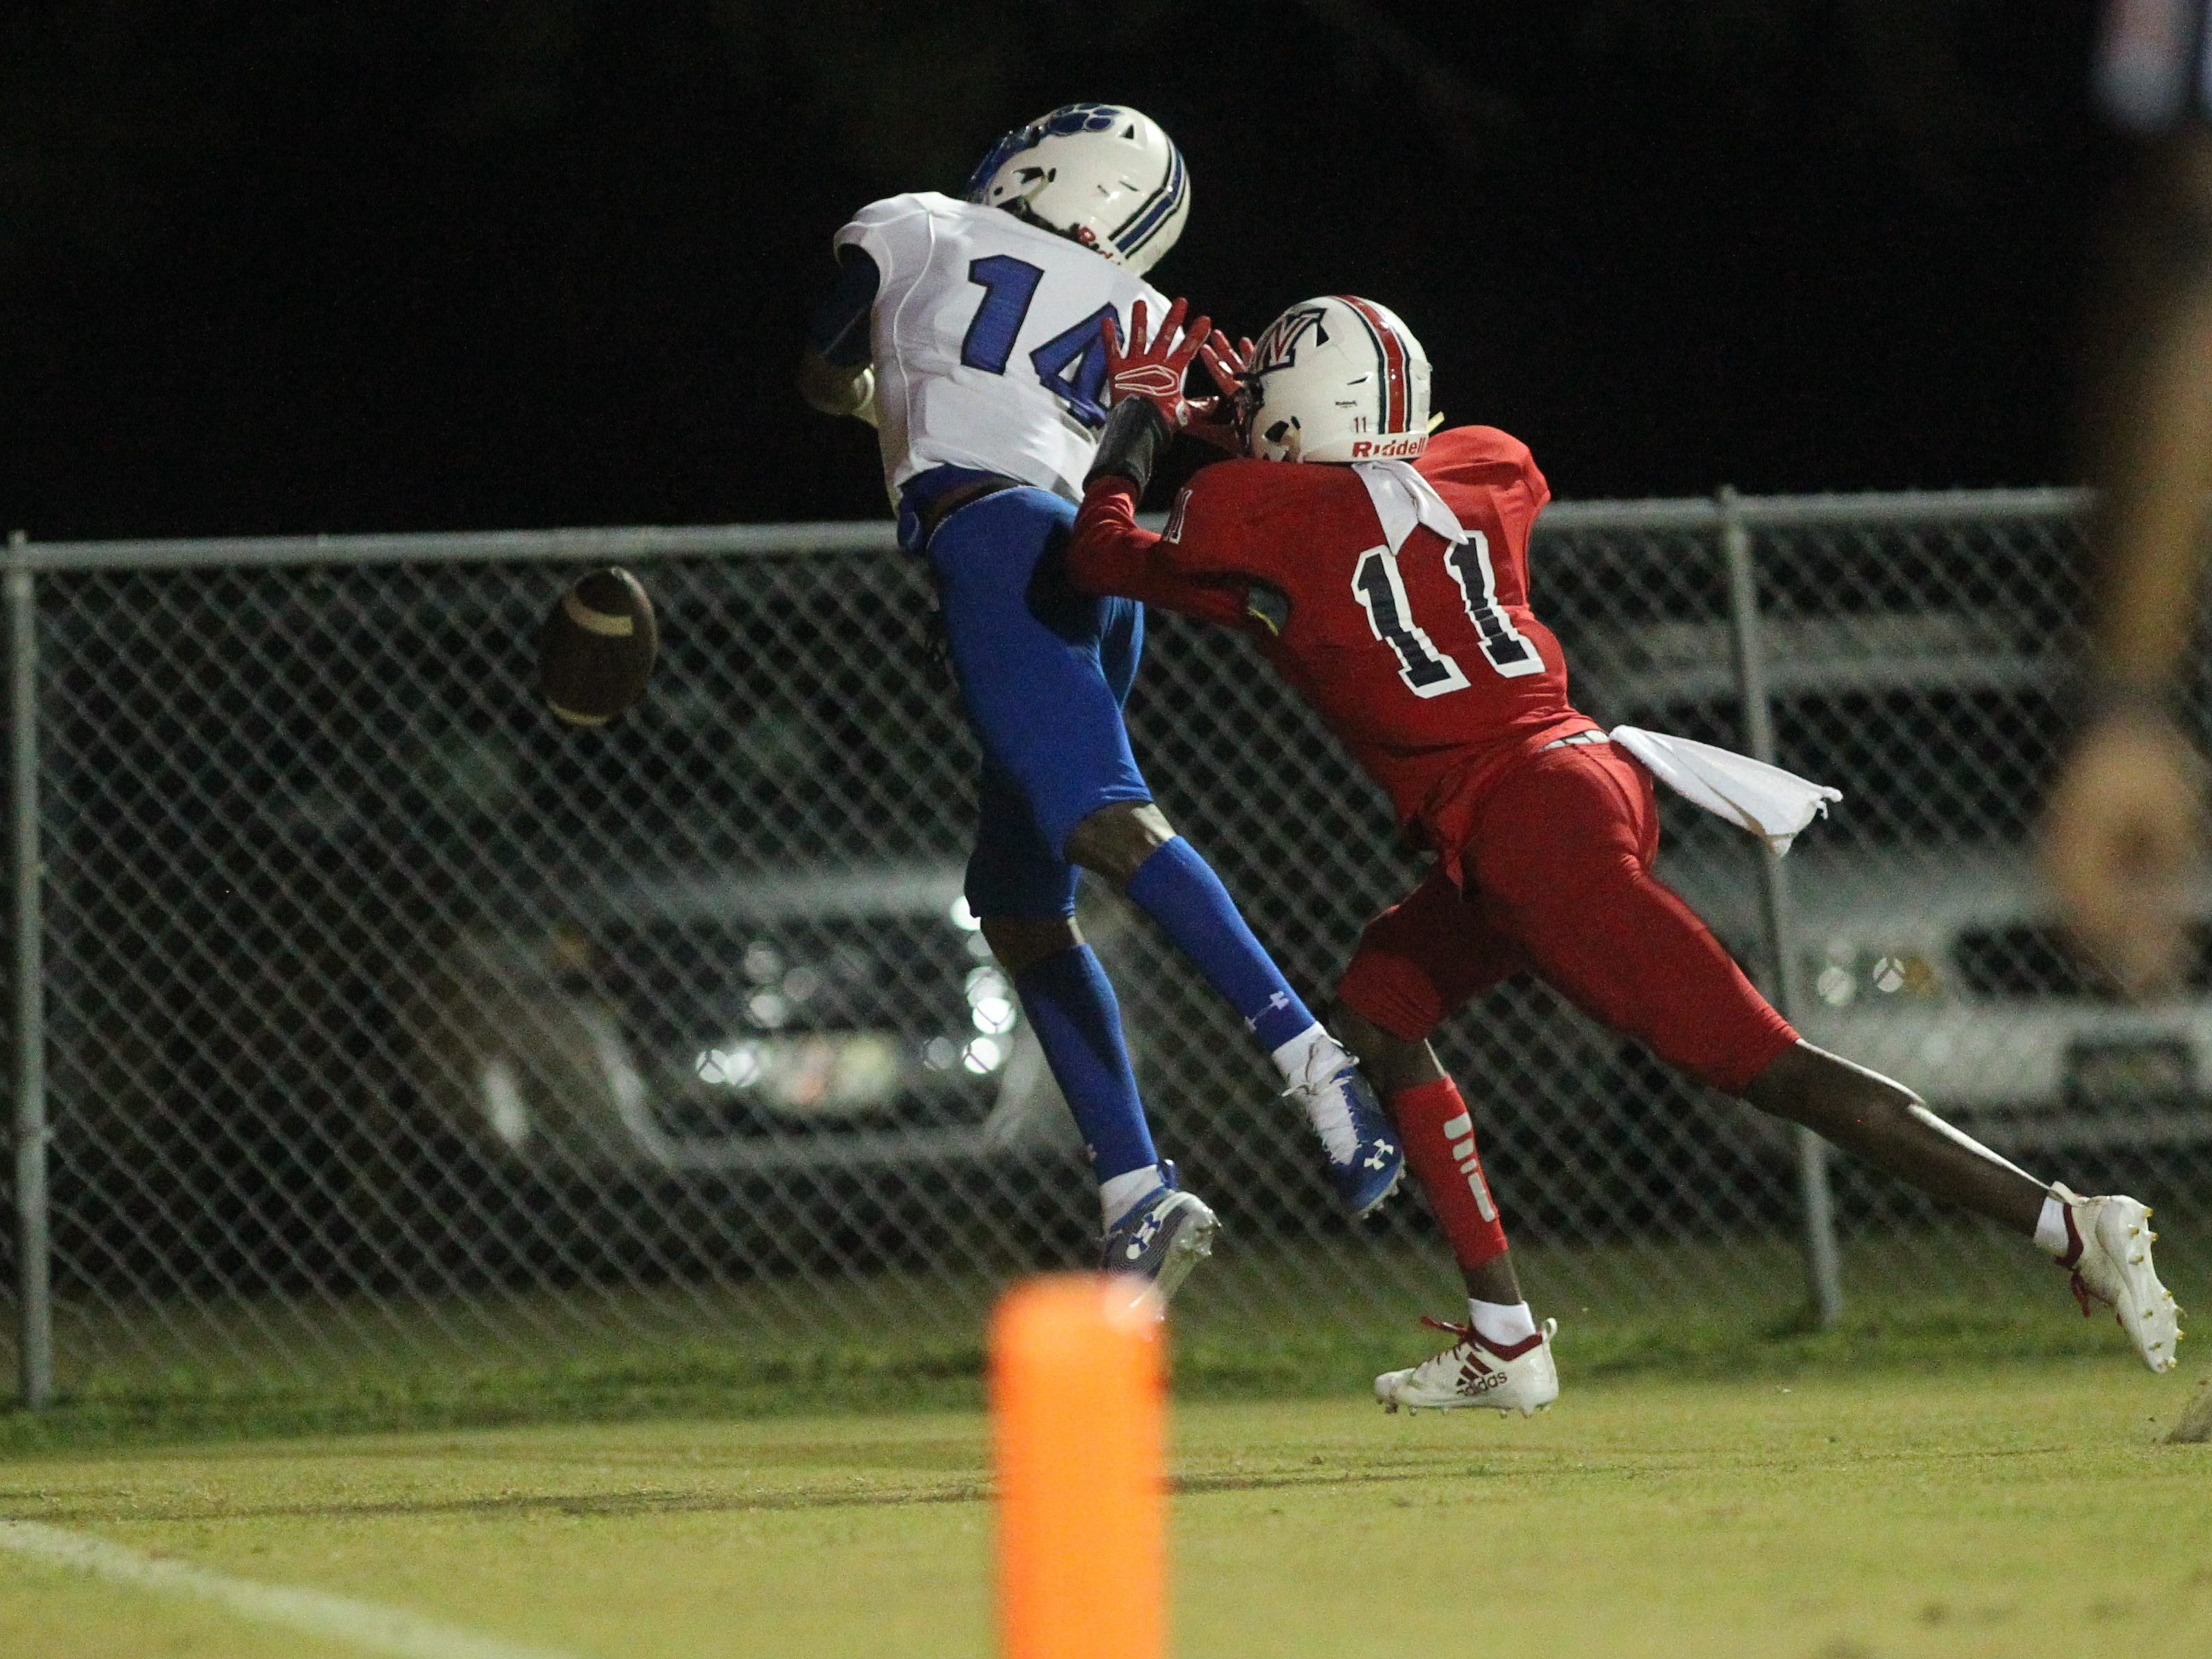 Wakulla's Malik Murray pushes Godby receiver Ja'heim Knight on a ball just out of Knight's reach as Godby beat Wakulla 37-13 on Friday night.